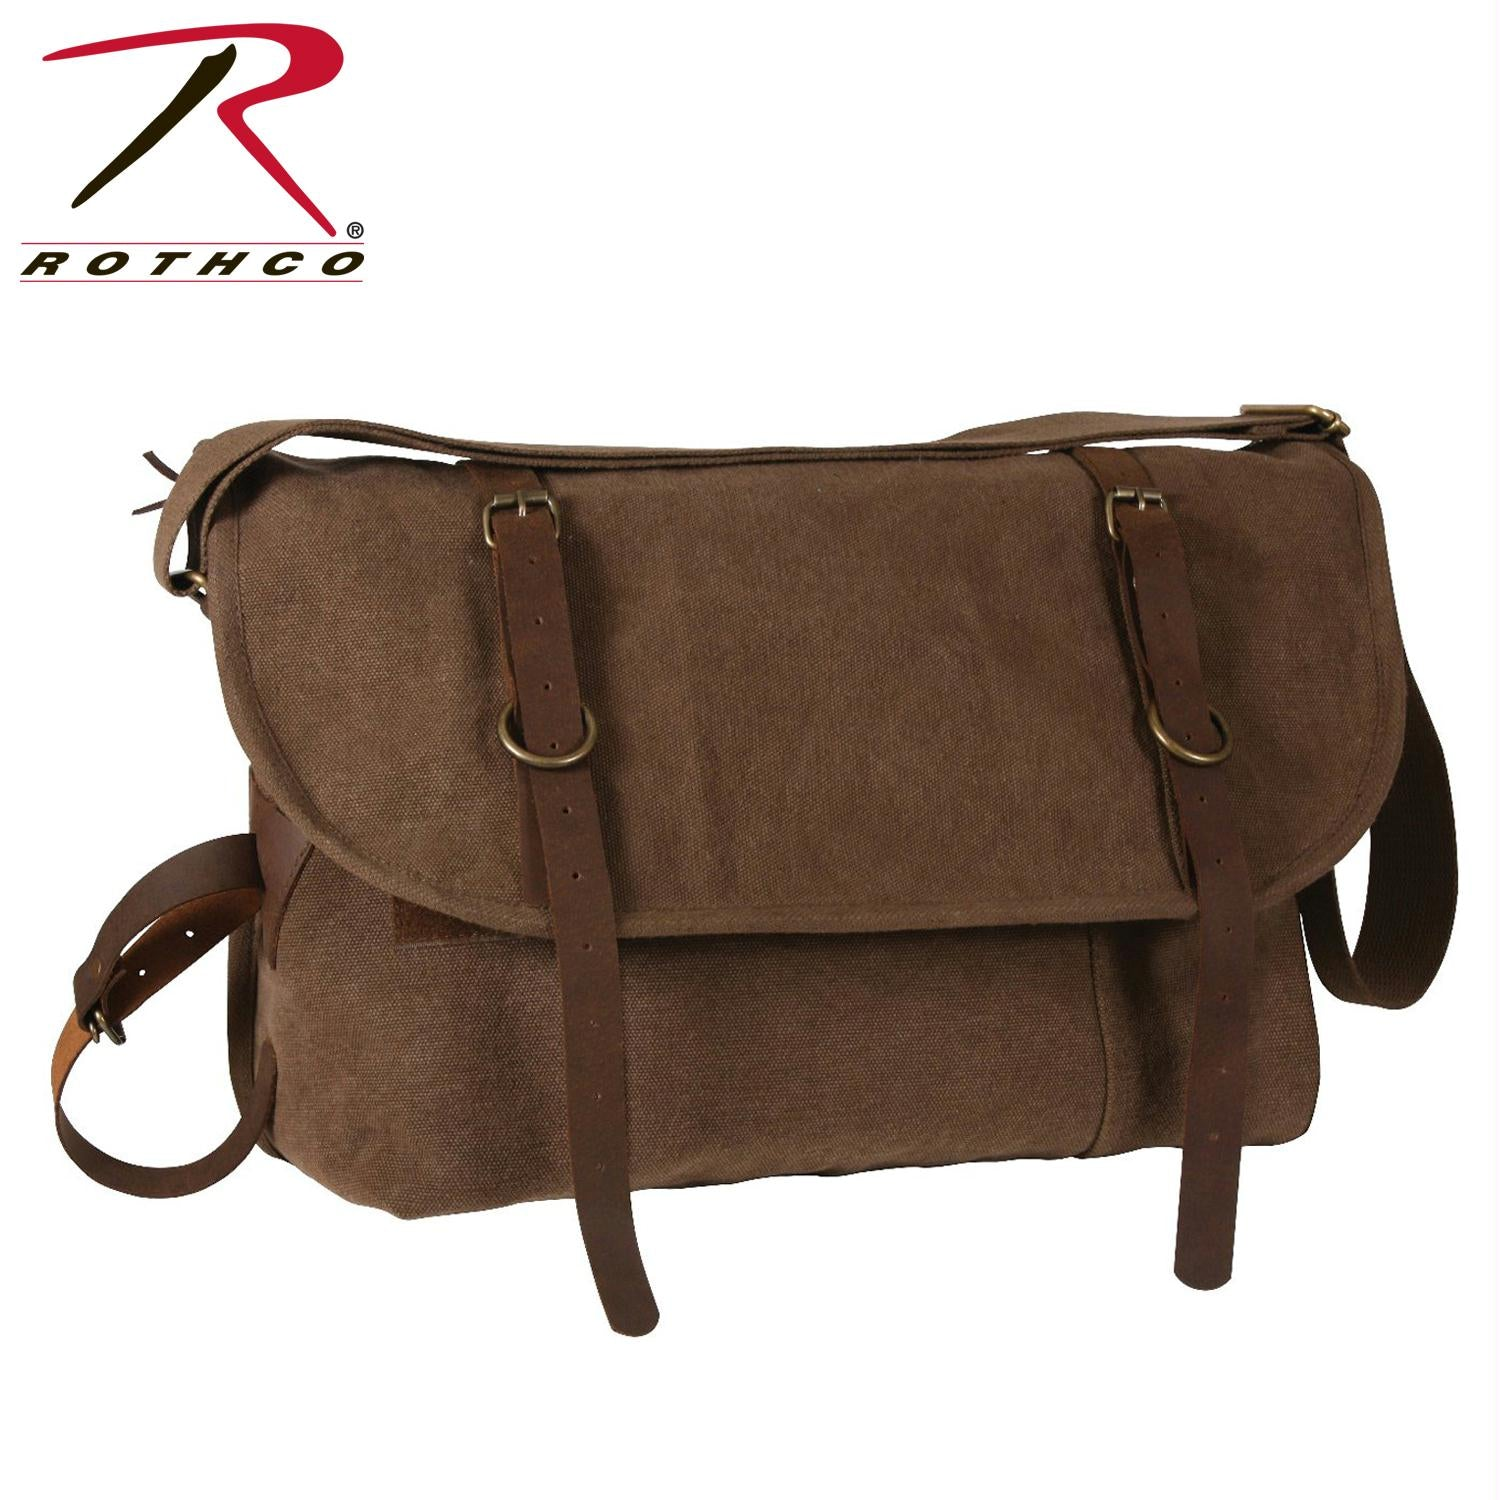 Rothco Vintage Canvas Explorer Shoulder Bag w/ Leather Accents - Brown